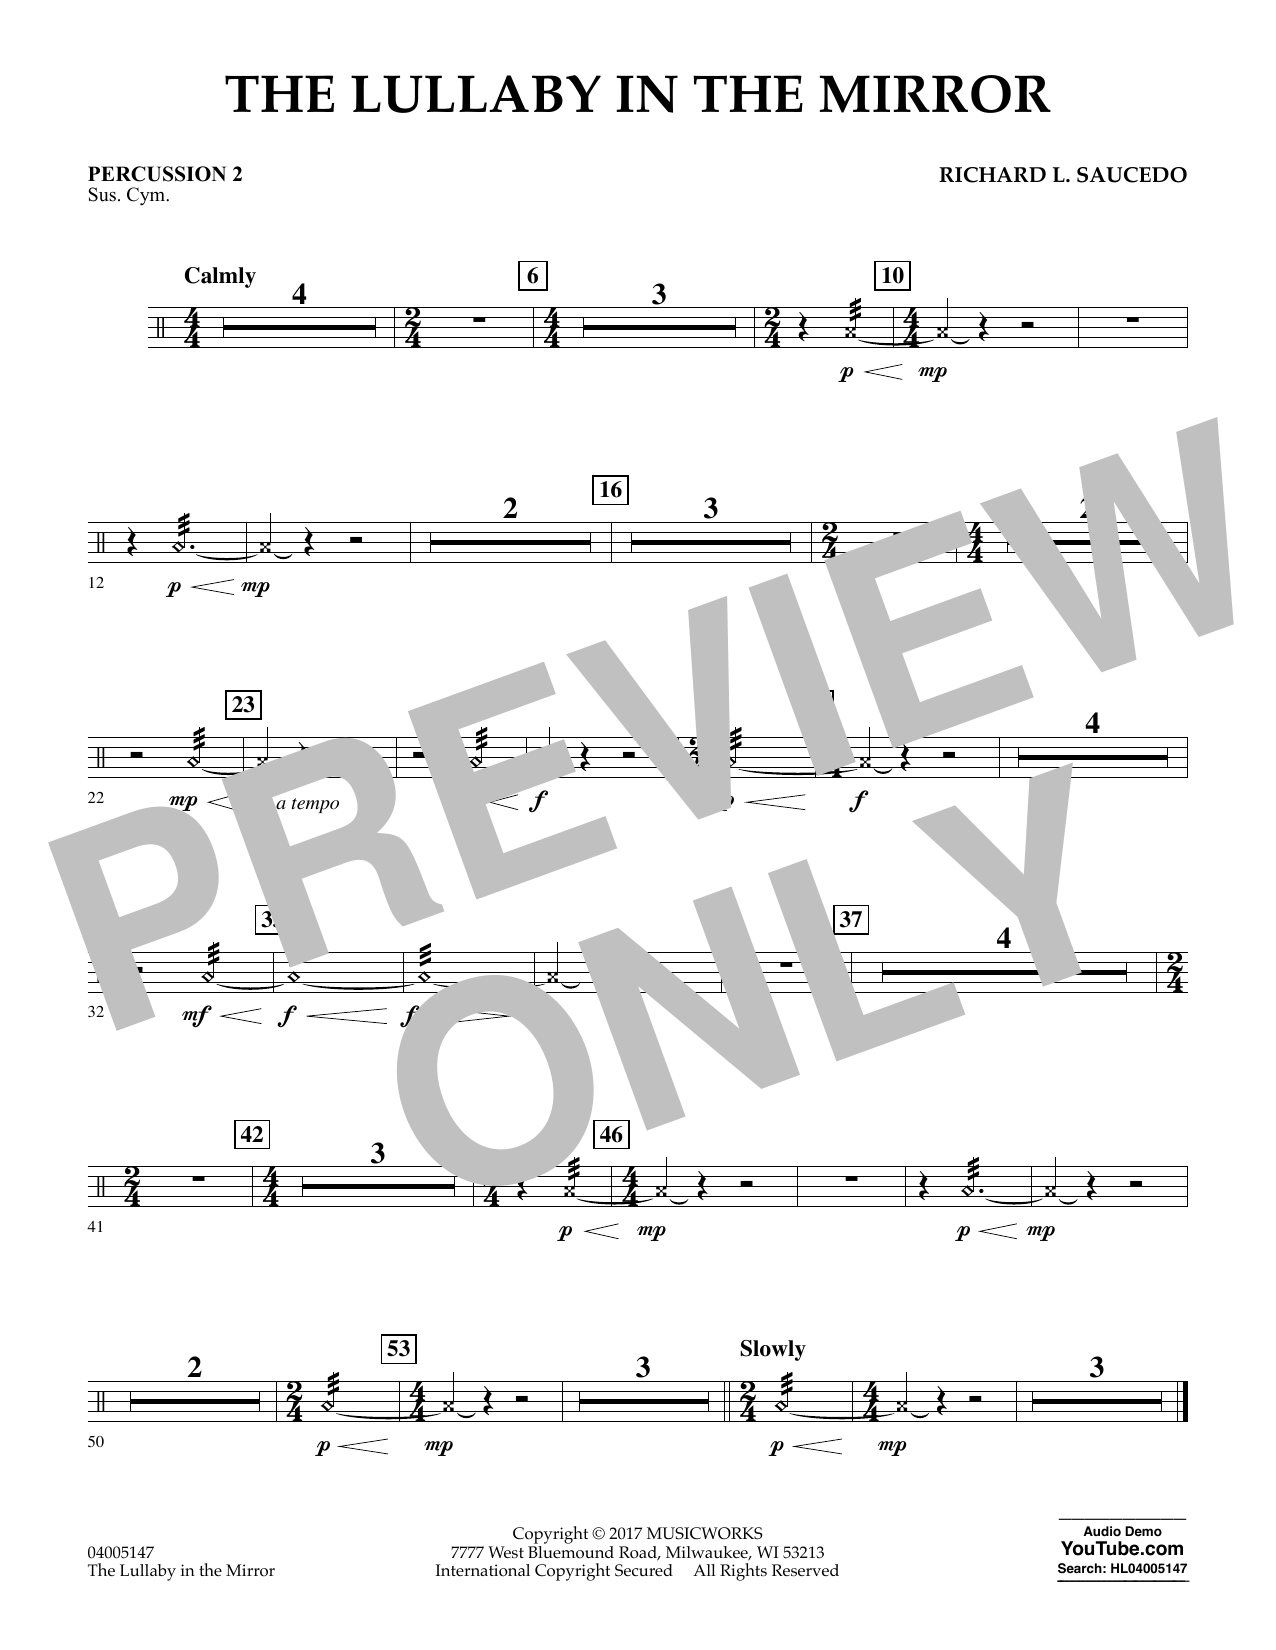 Richard L. Saucedo The Lullaby in the Mirror - Percussion 2 sheet music notes and chords. Download Printable PDF.